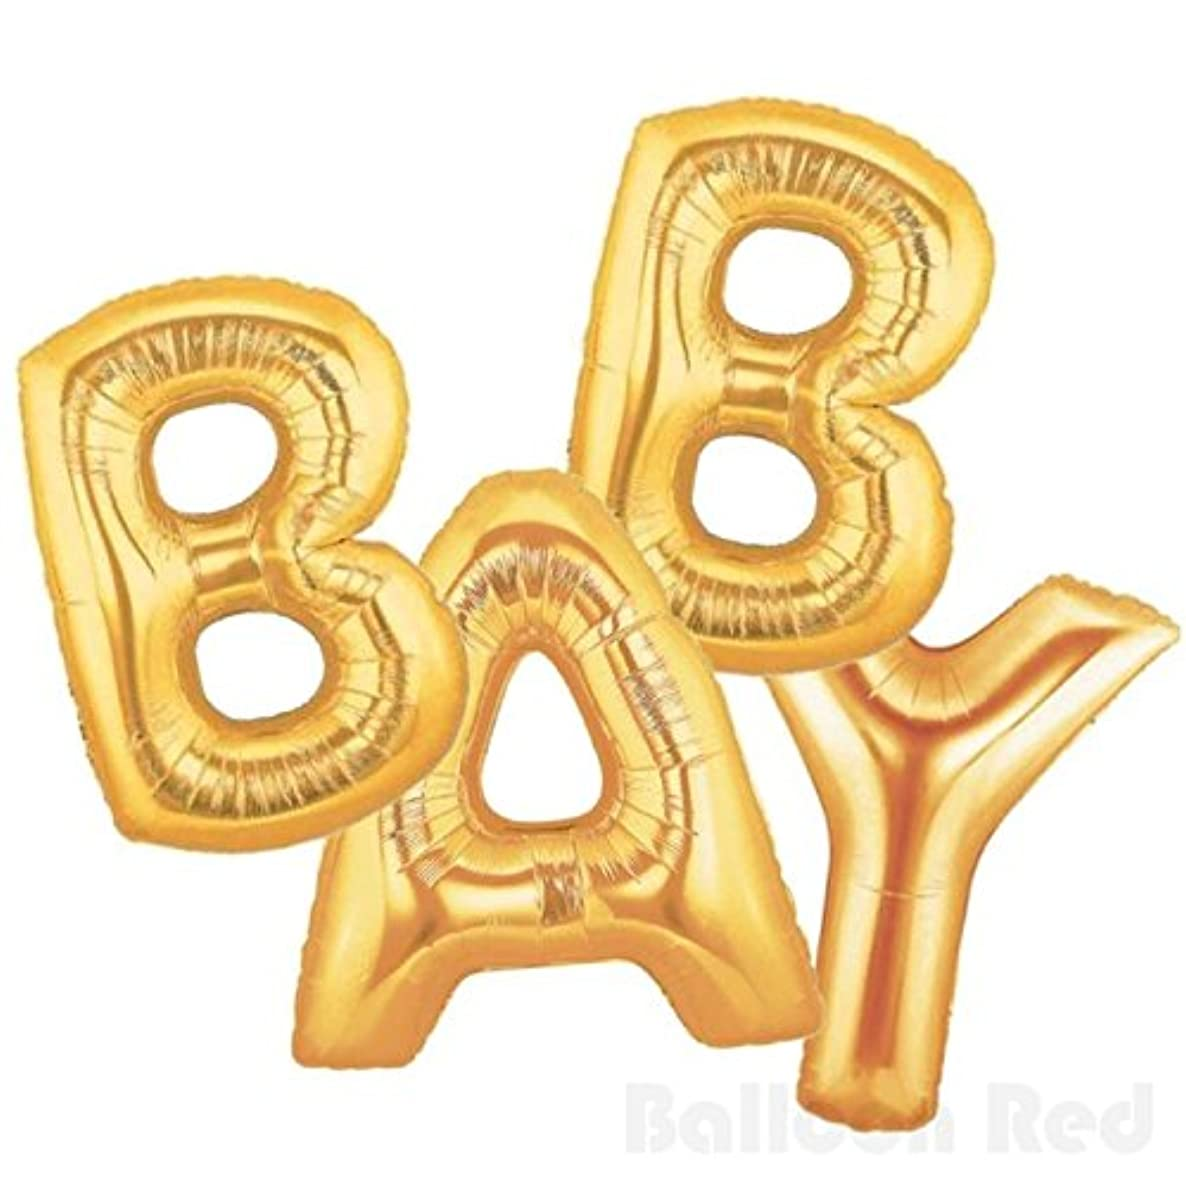 16 Inch Foil Mylar Balloons Banner for Wall Decoration (Premium Quality, Air-Fill Only, Cannot Float), Matte Gold, Letters Baby